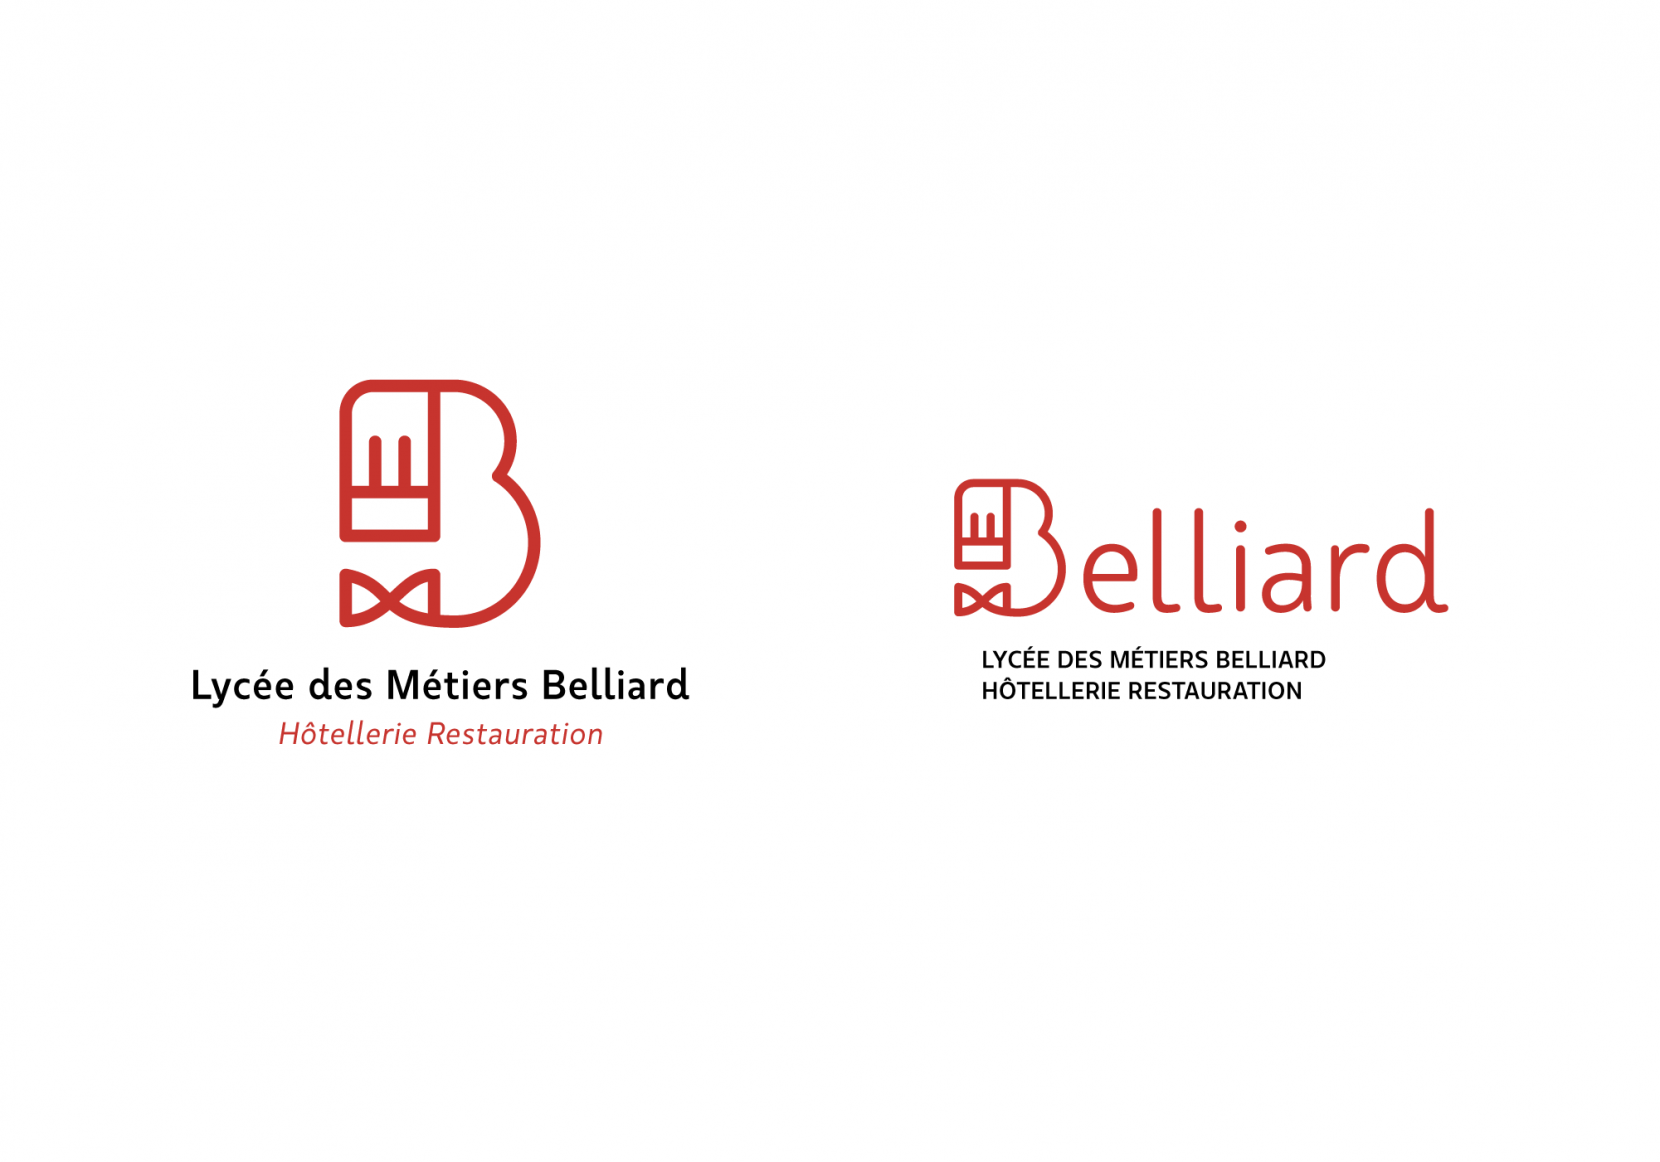 cdemontmorillon_belliard_02-1660x1162.png